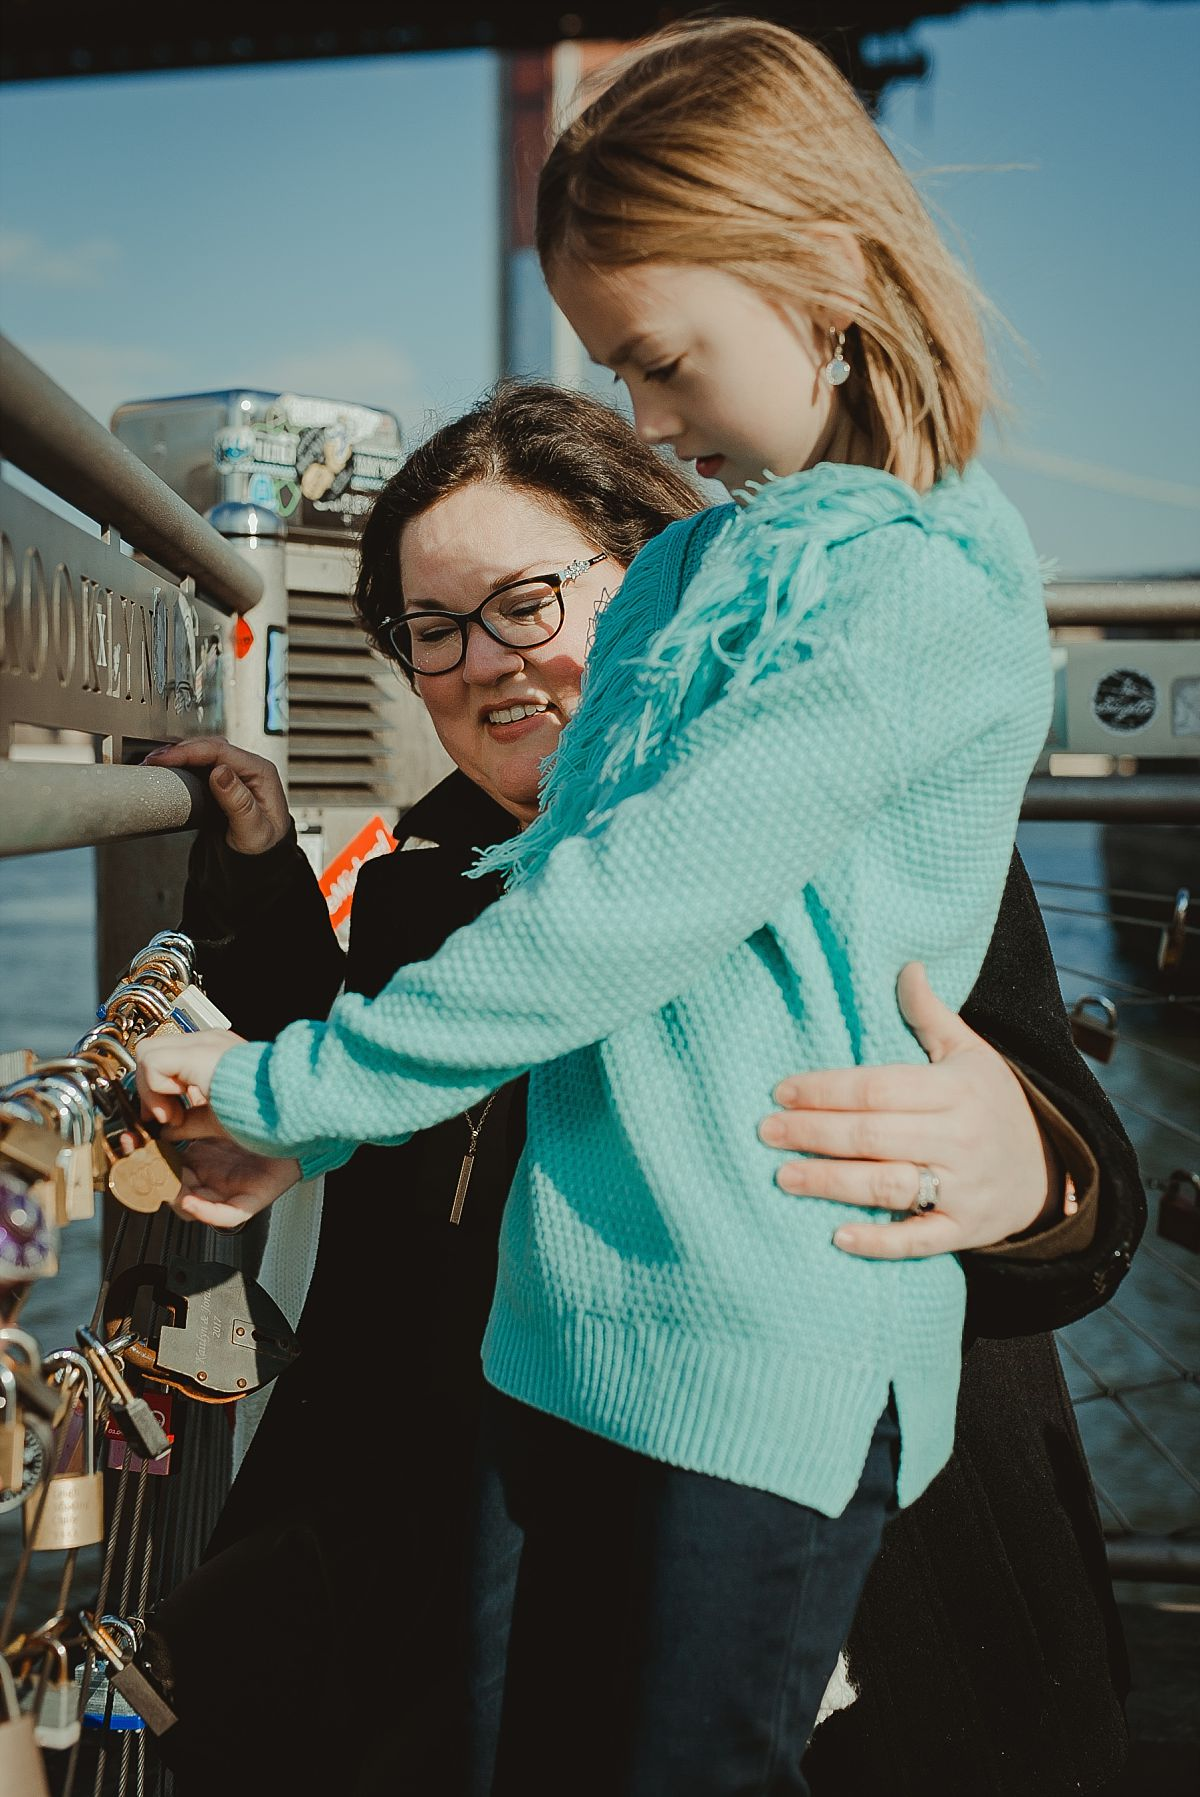 candid mom and daughter portrait as they explore the lockets at pier in dumbo brooklyn. photo by nyc family photographer krystil mcdowall